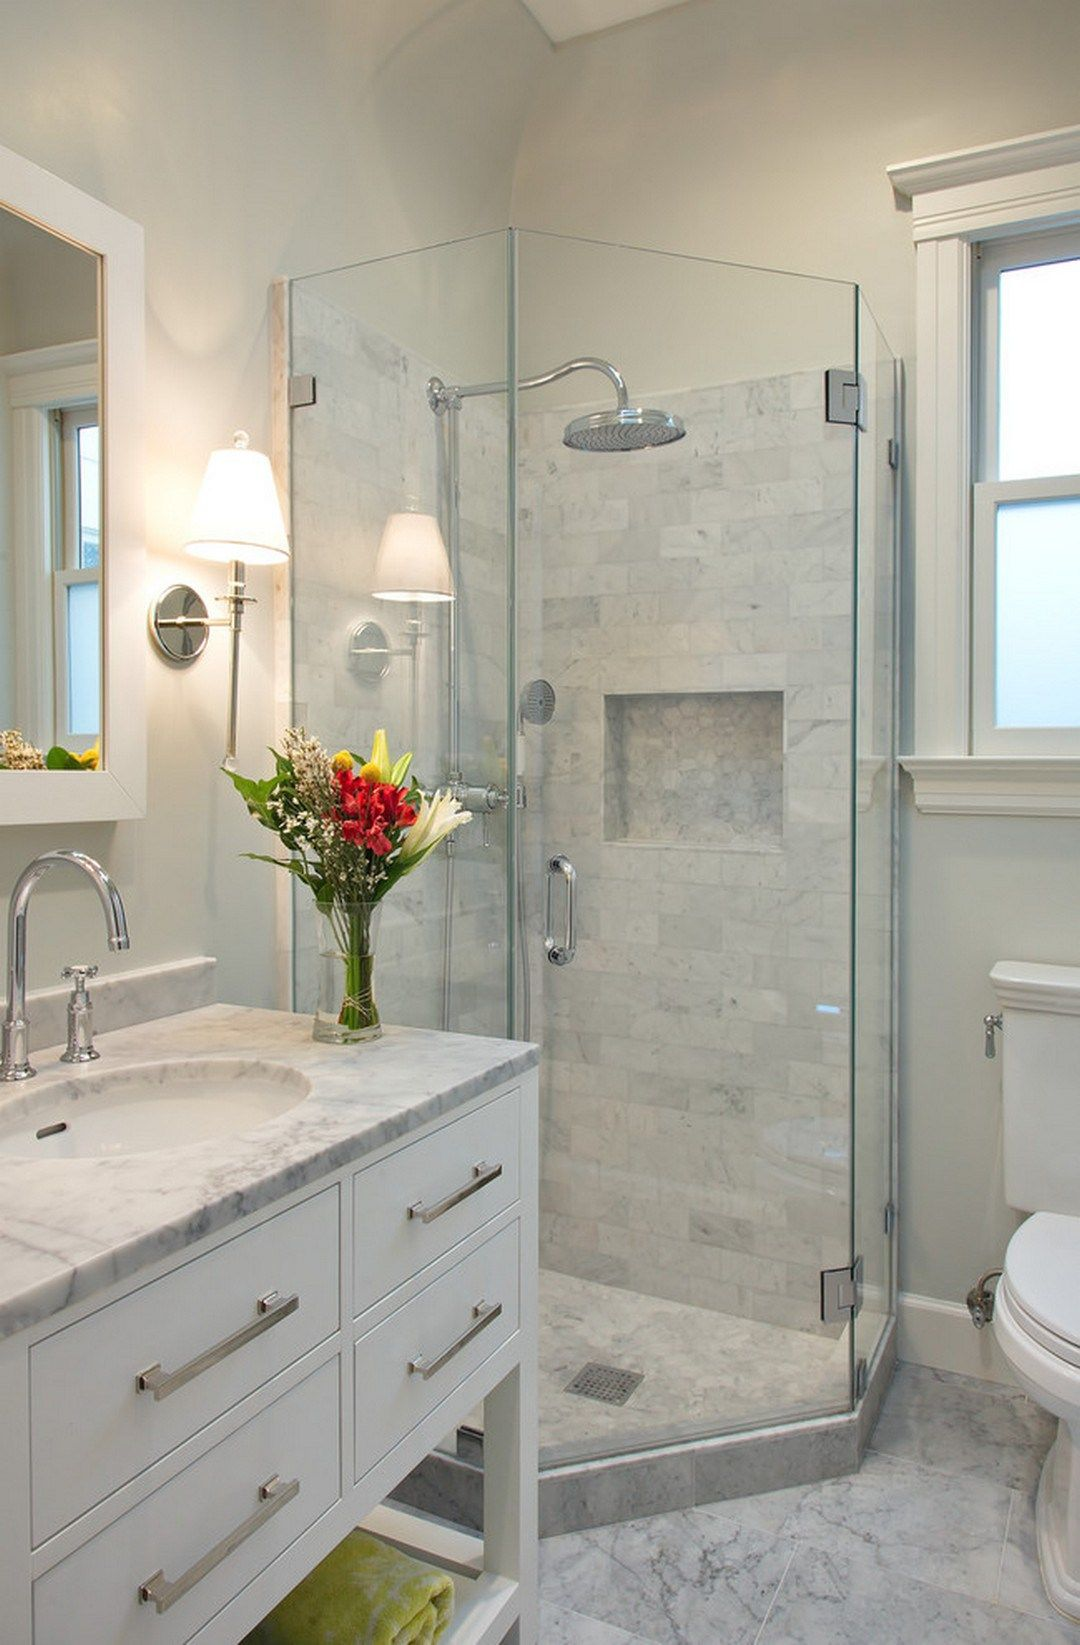 99 Small Master Bathroom Makeover Ideas On A Budget 71